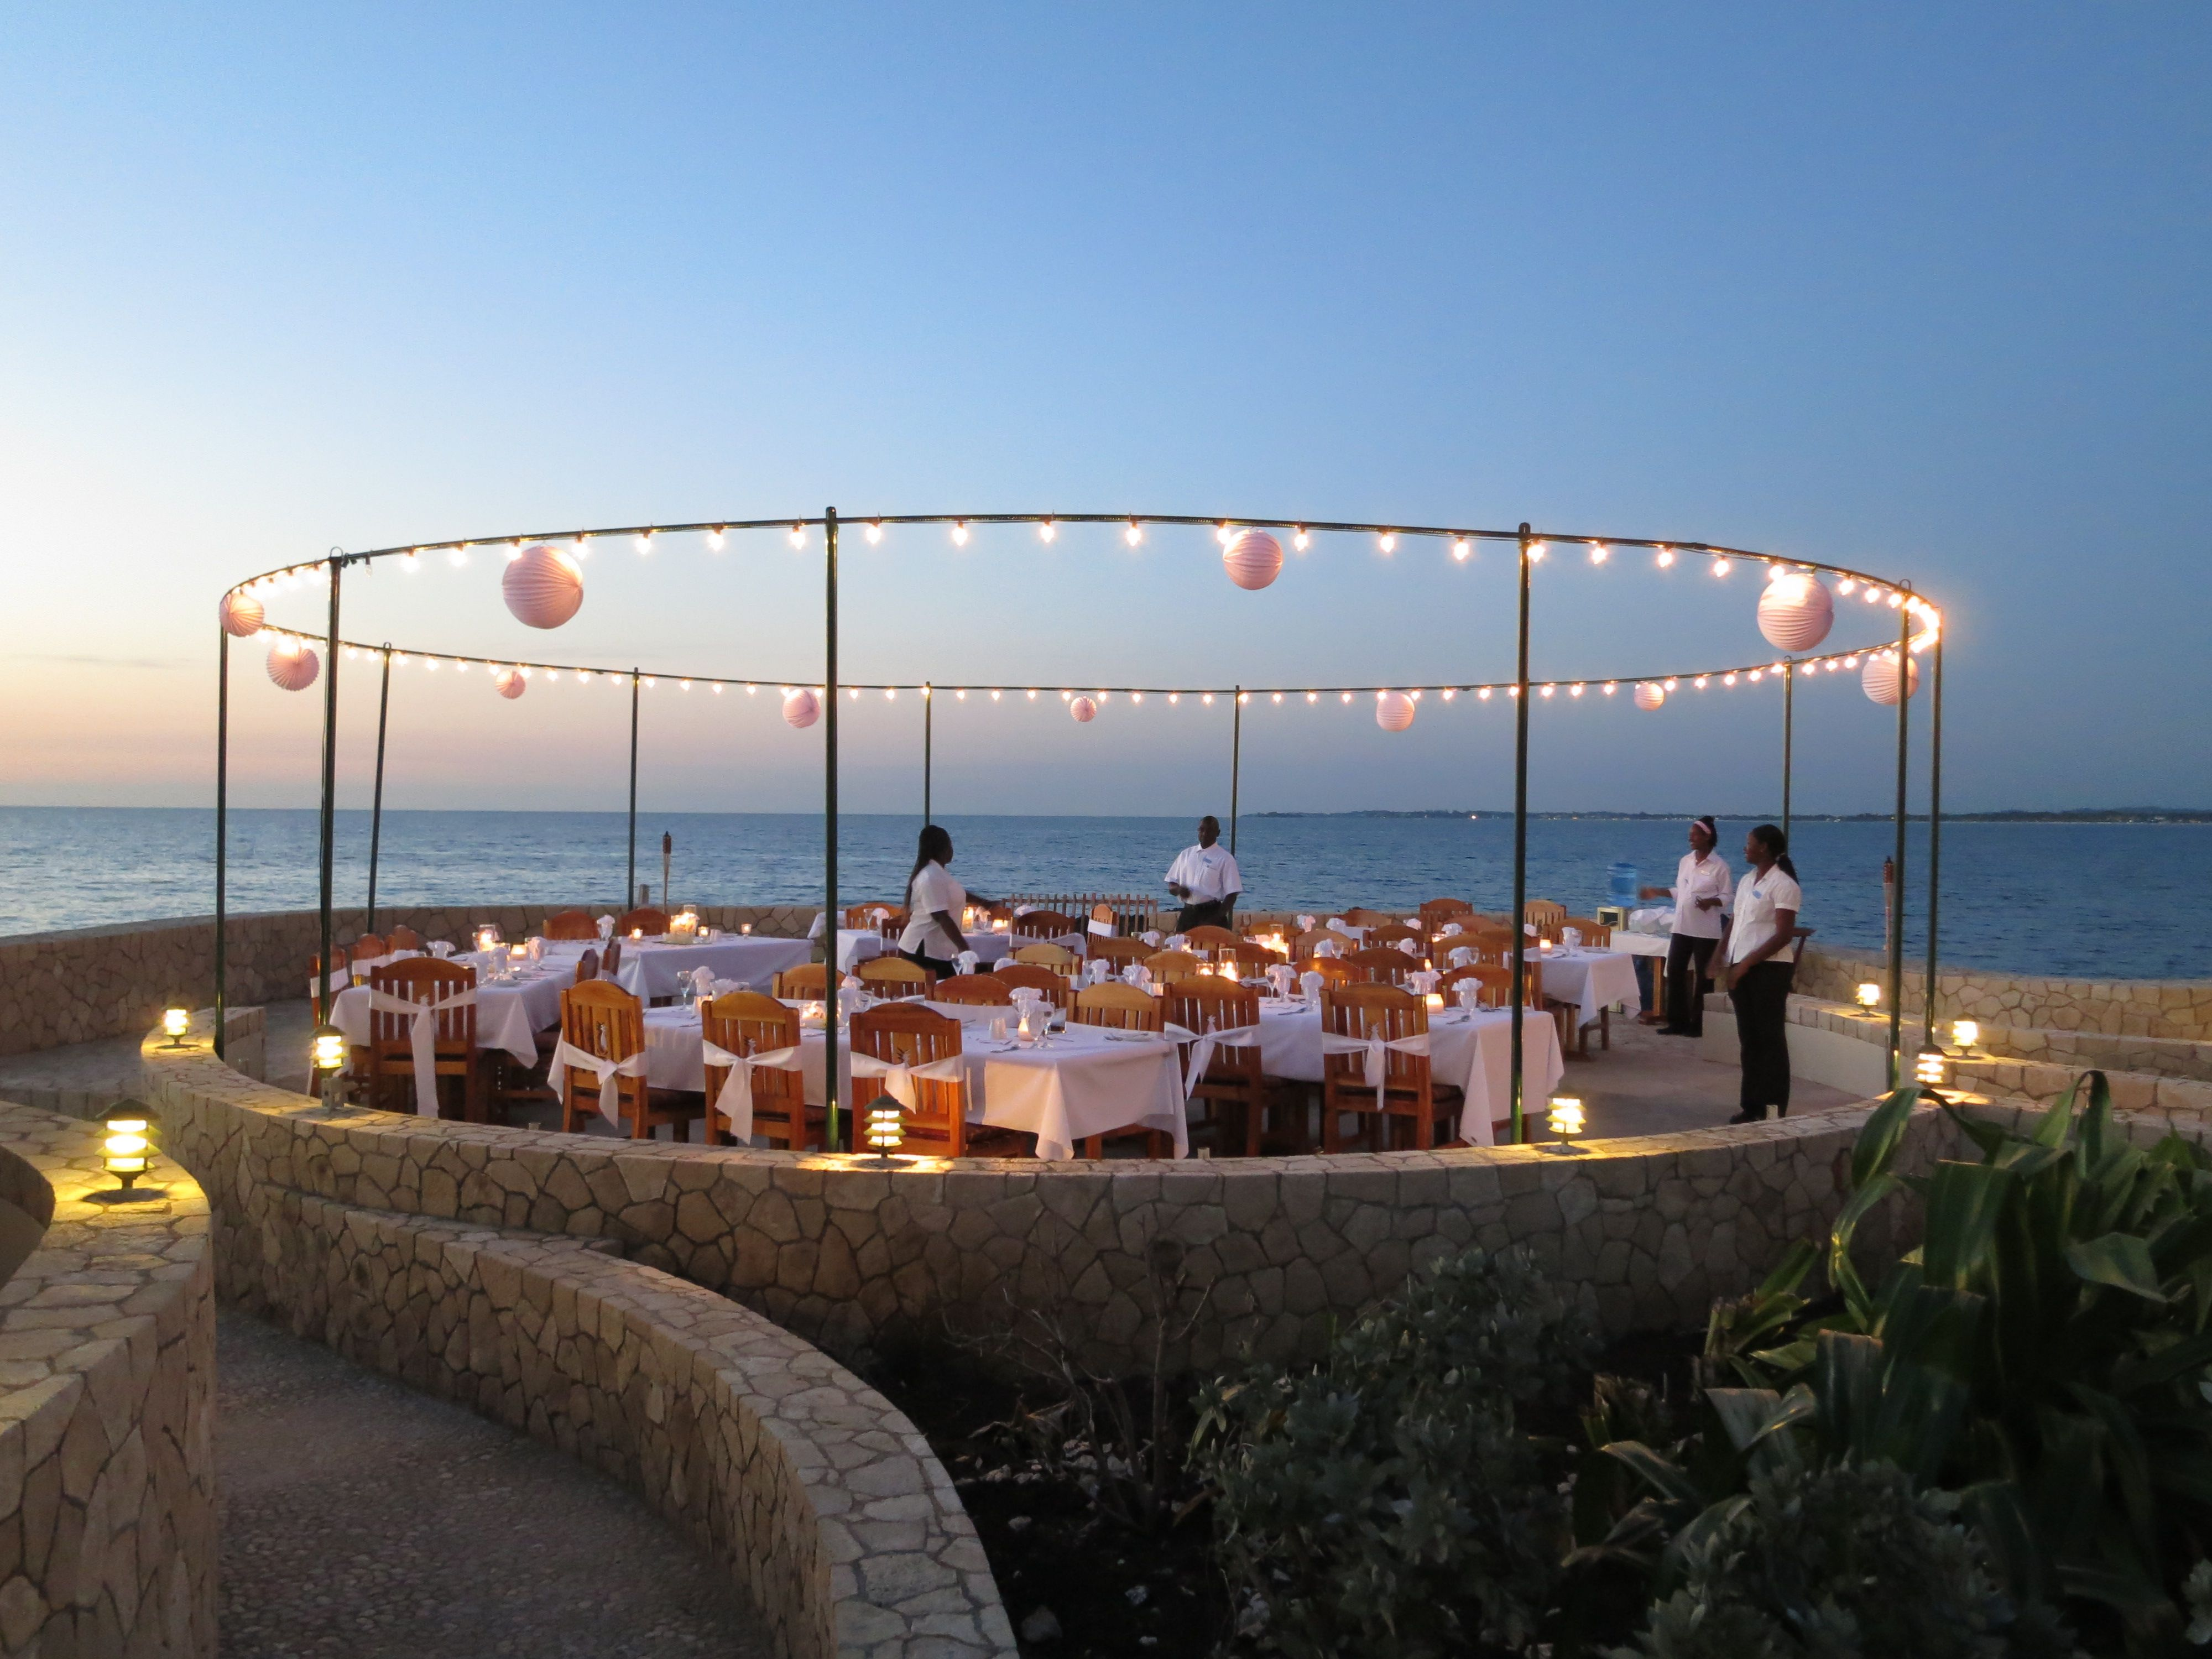 Caribbean Catering Beach Weddings: Cliff Side Caribbean Wedding Reception At The SPA Retreat